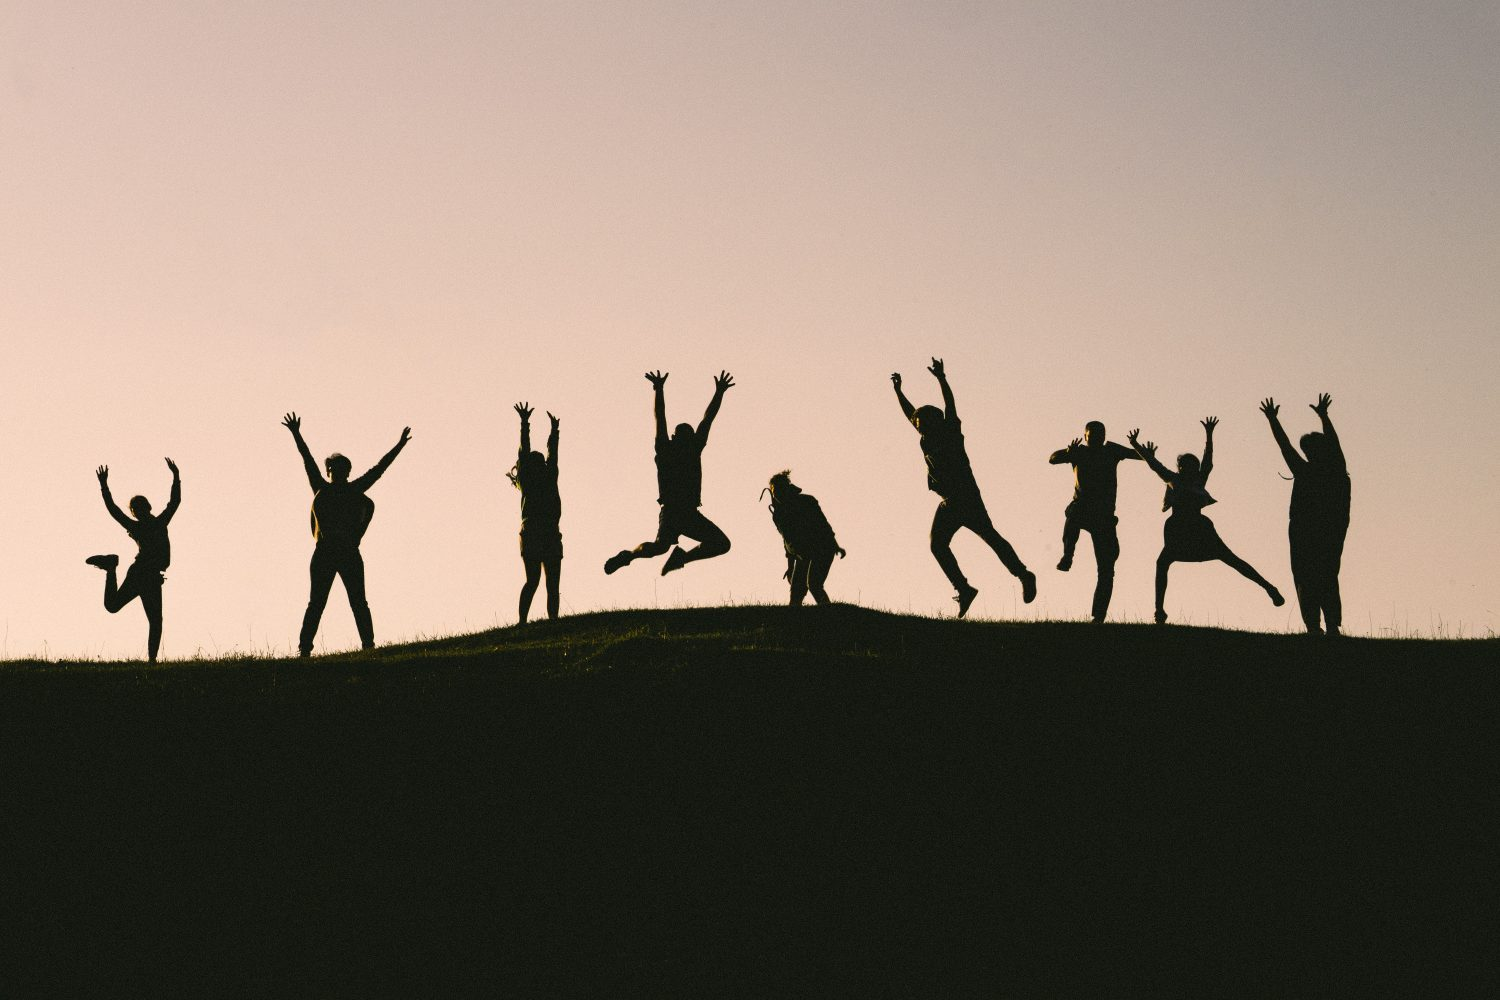 silhouette photo of group of people jumping in the air